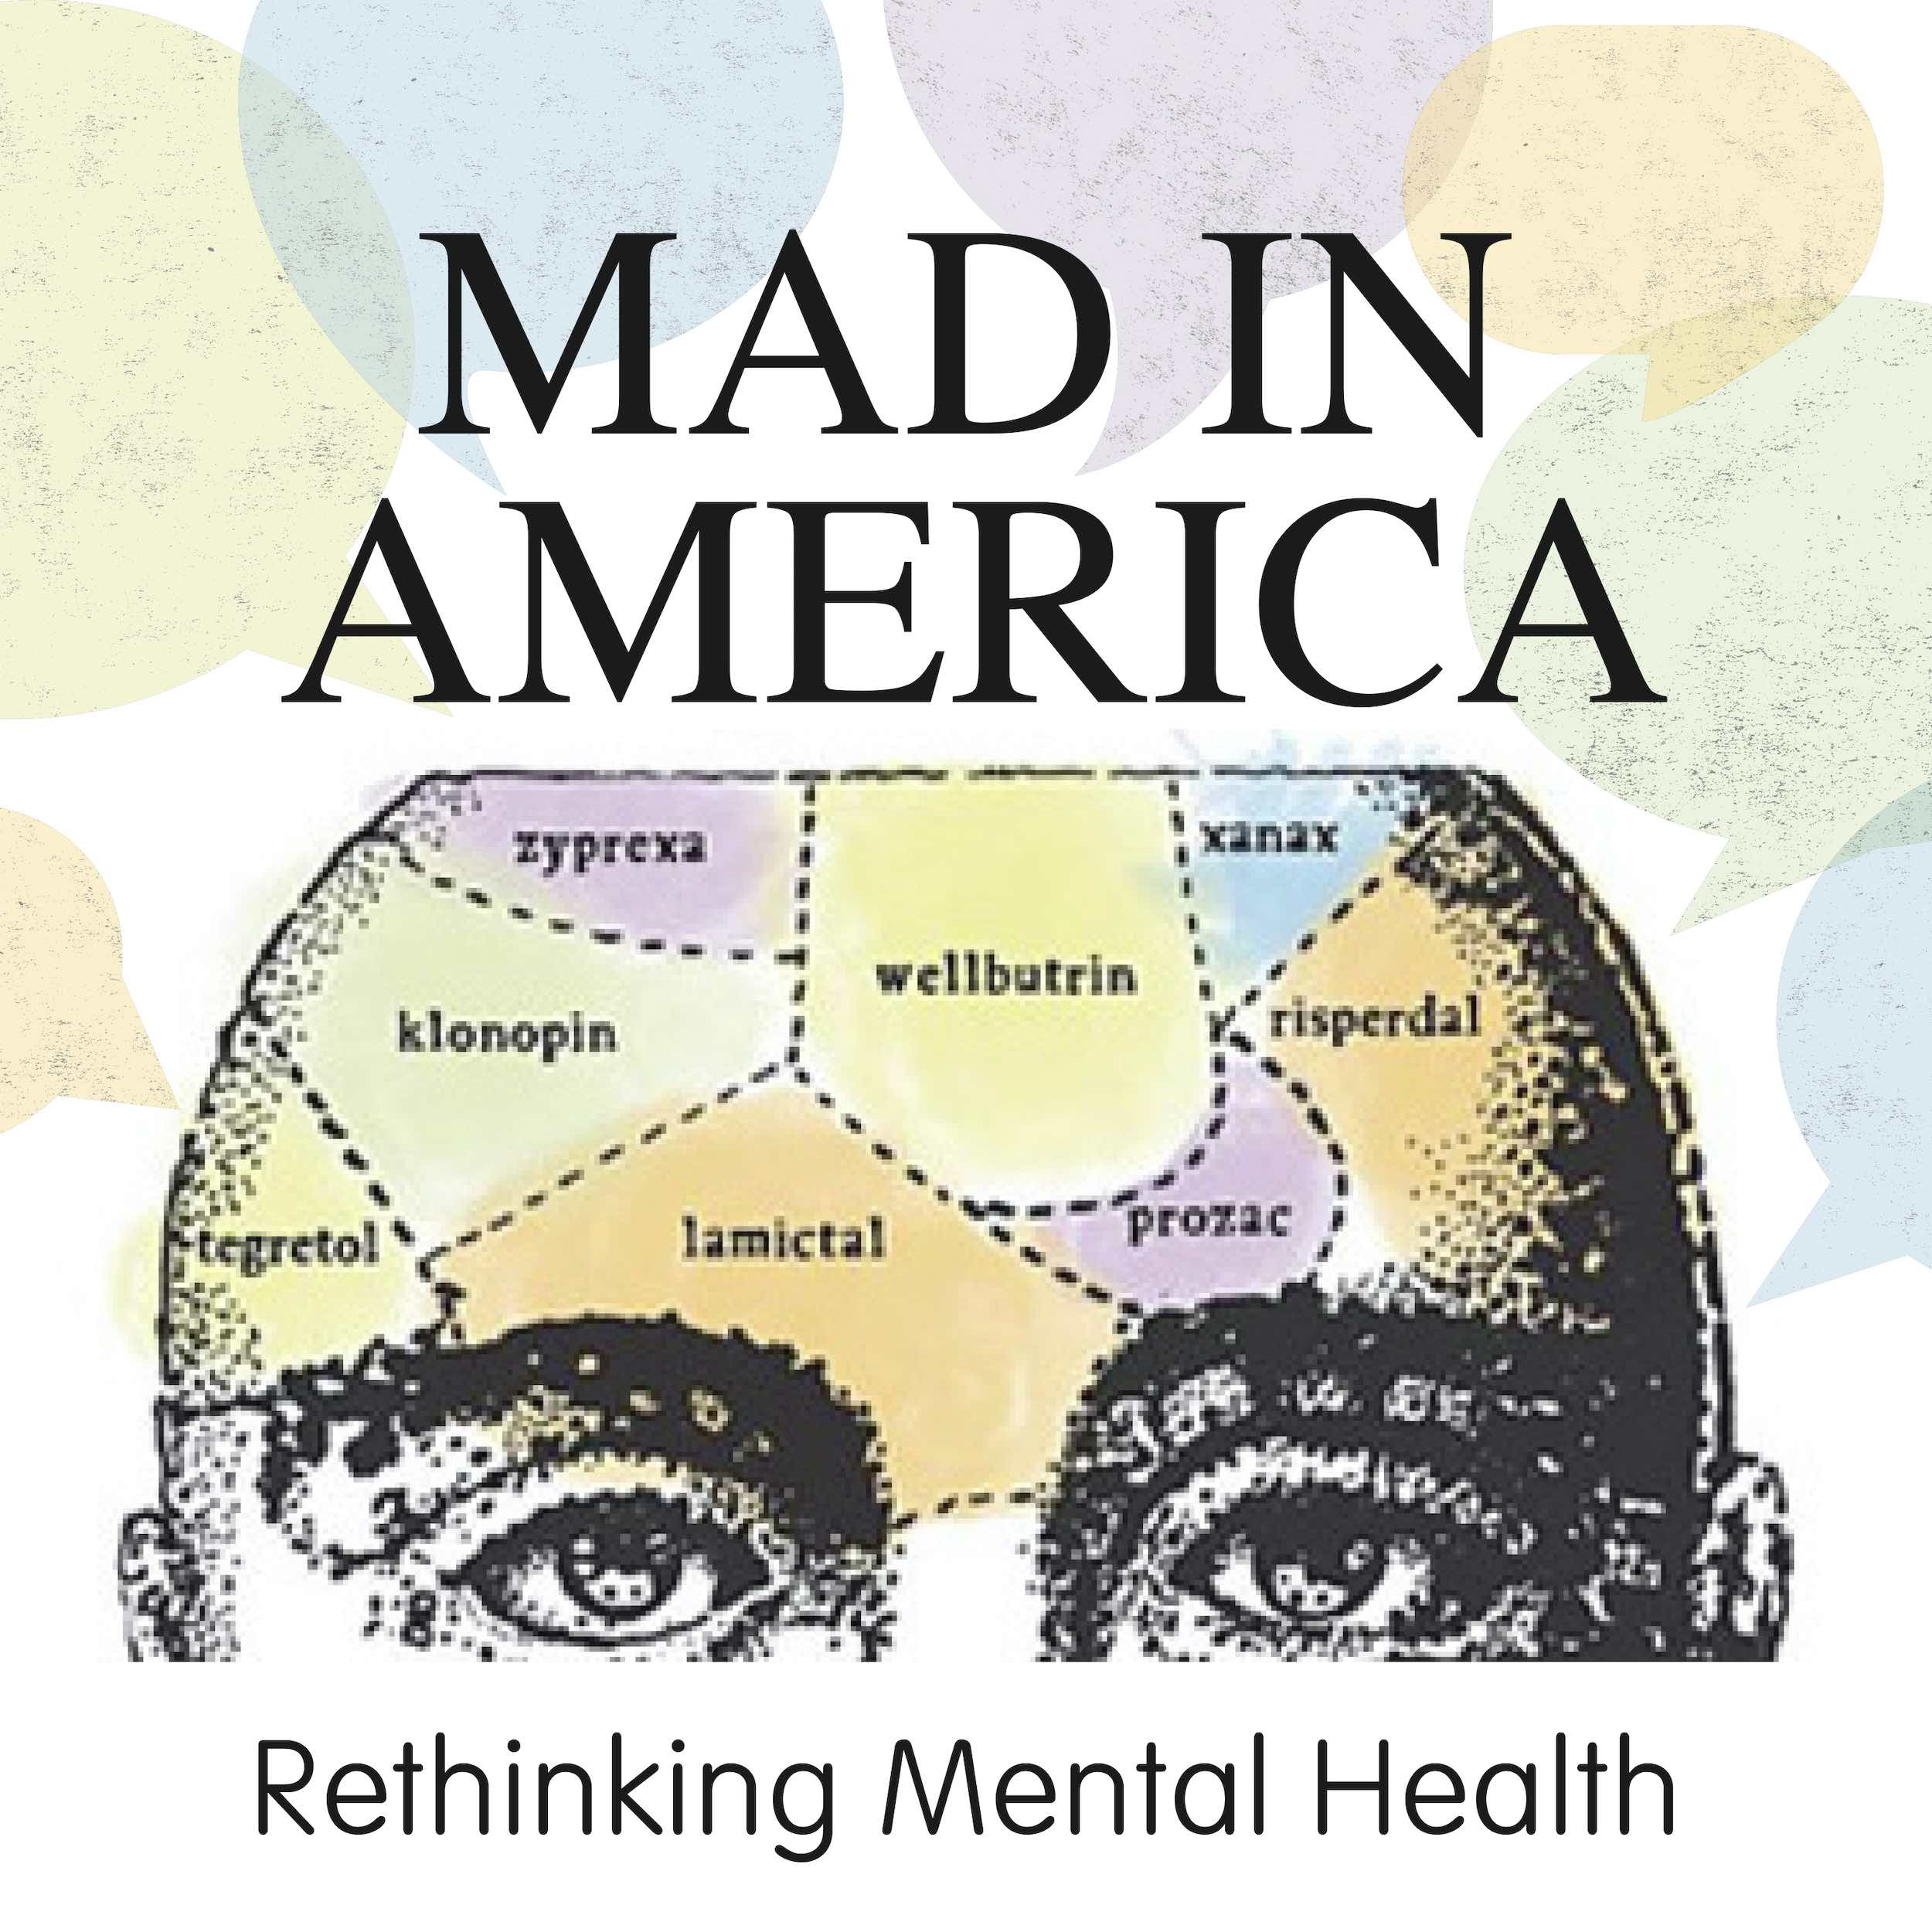 Mad in America: Rethinking Mental Health - Rhonda Speight - I Found My Lion's Roar - Combining Peer Support and Open Dialogue